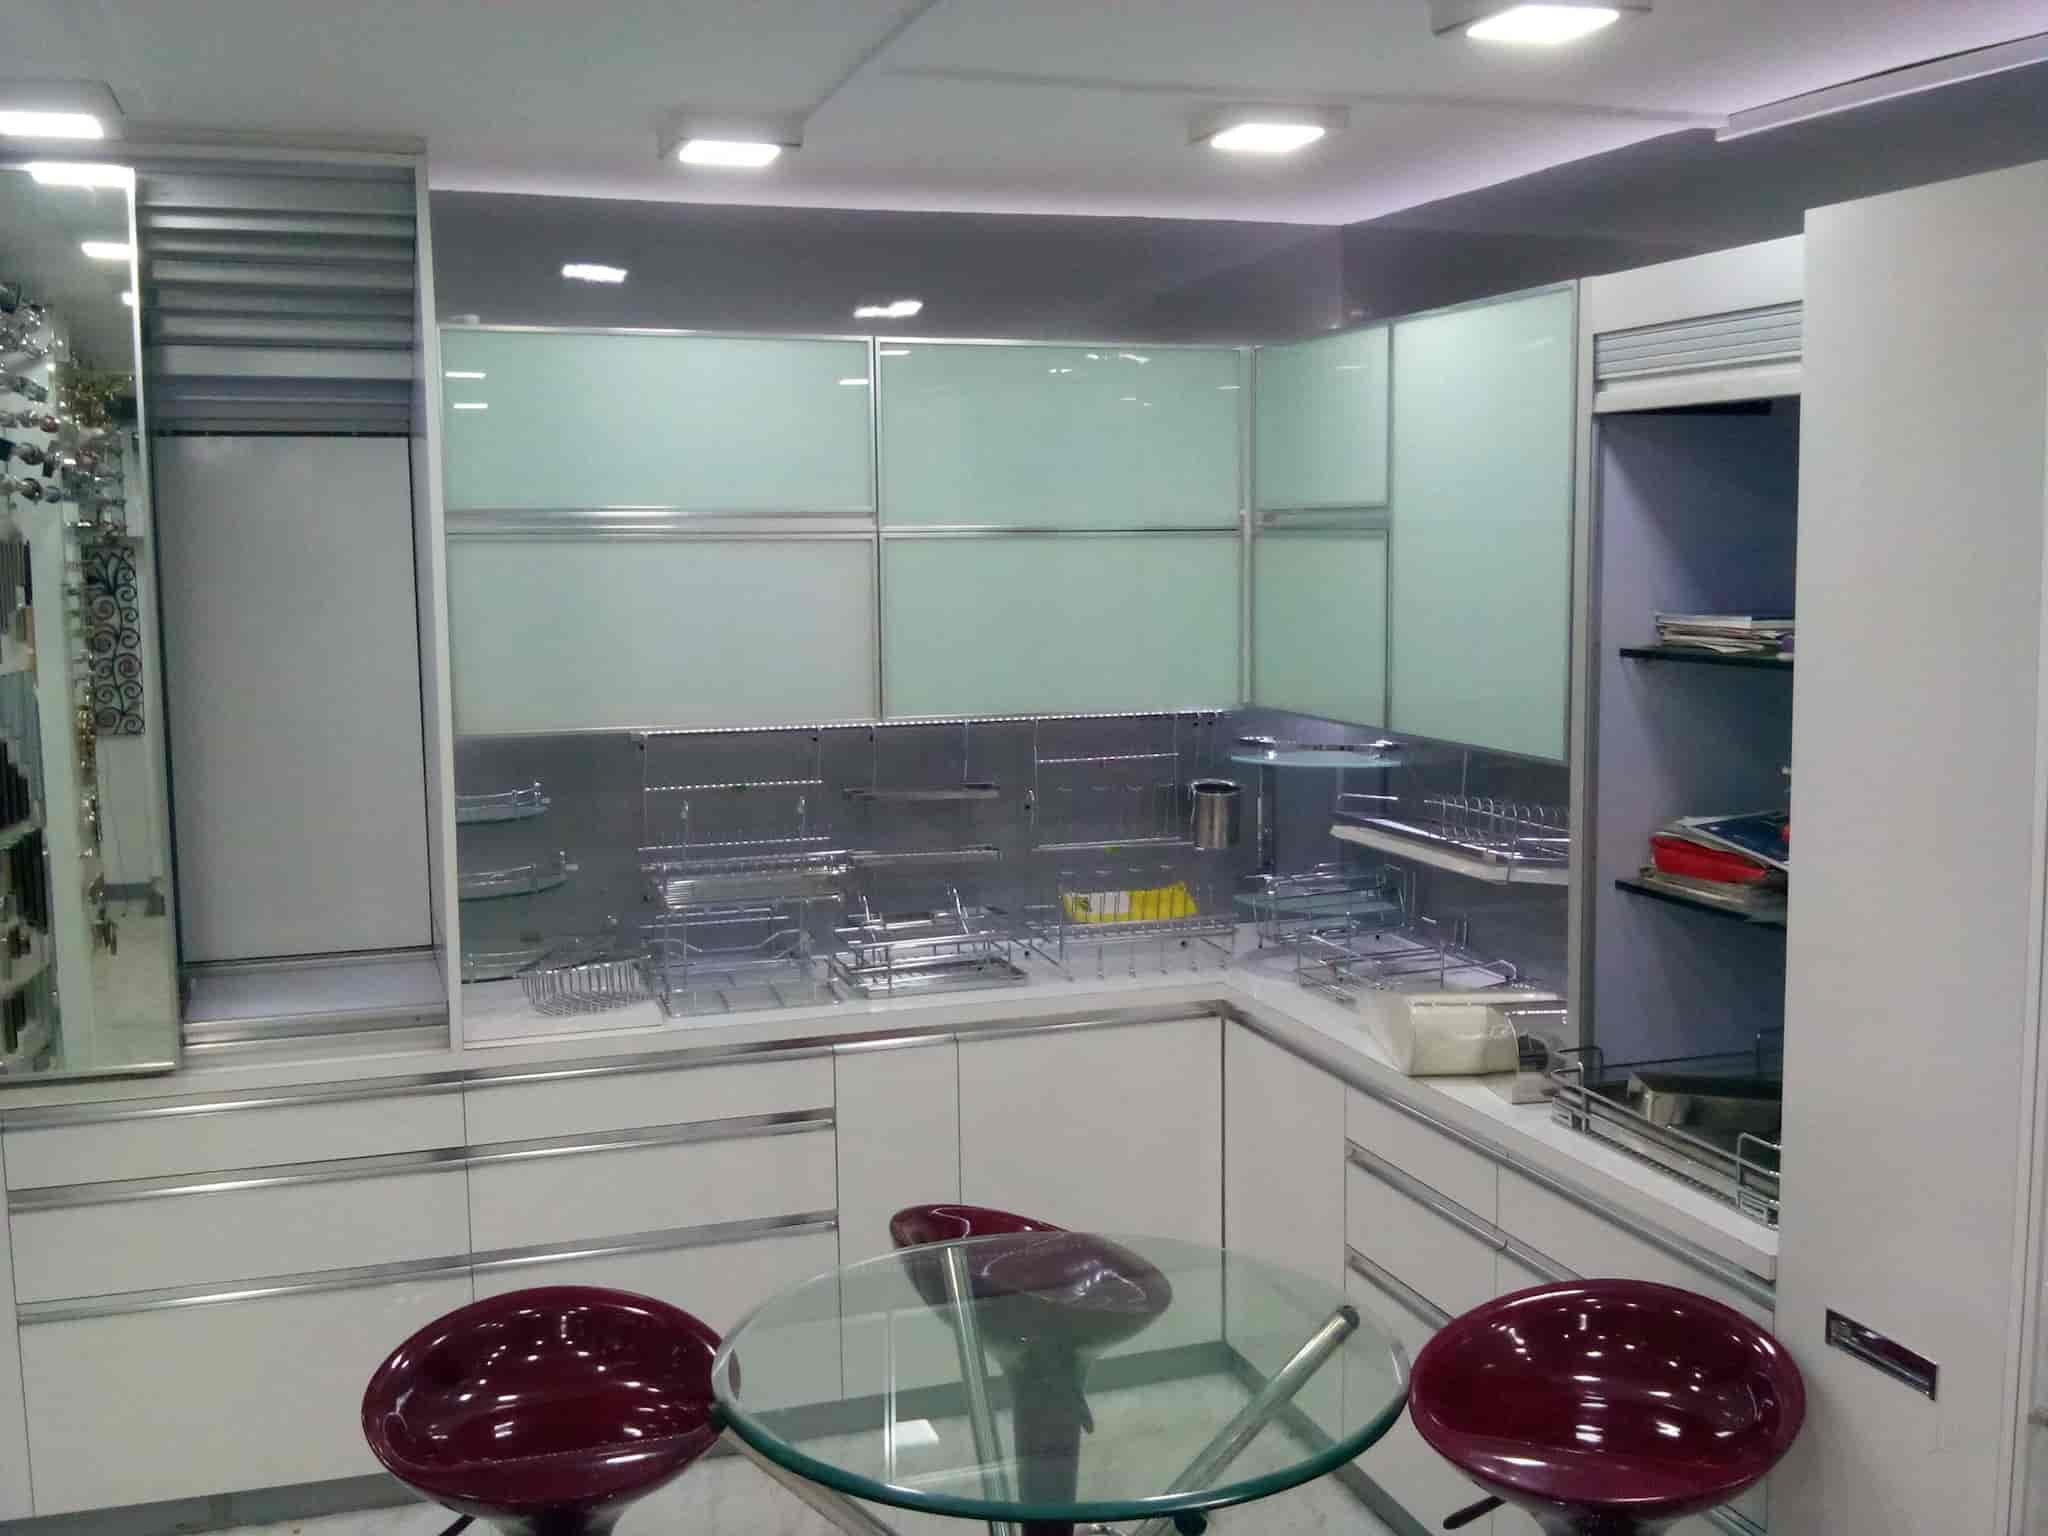 Solitaire Hardware And Kitchen Photos, Panjim, Goa- Pictures ...